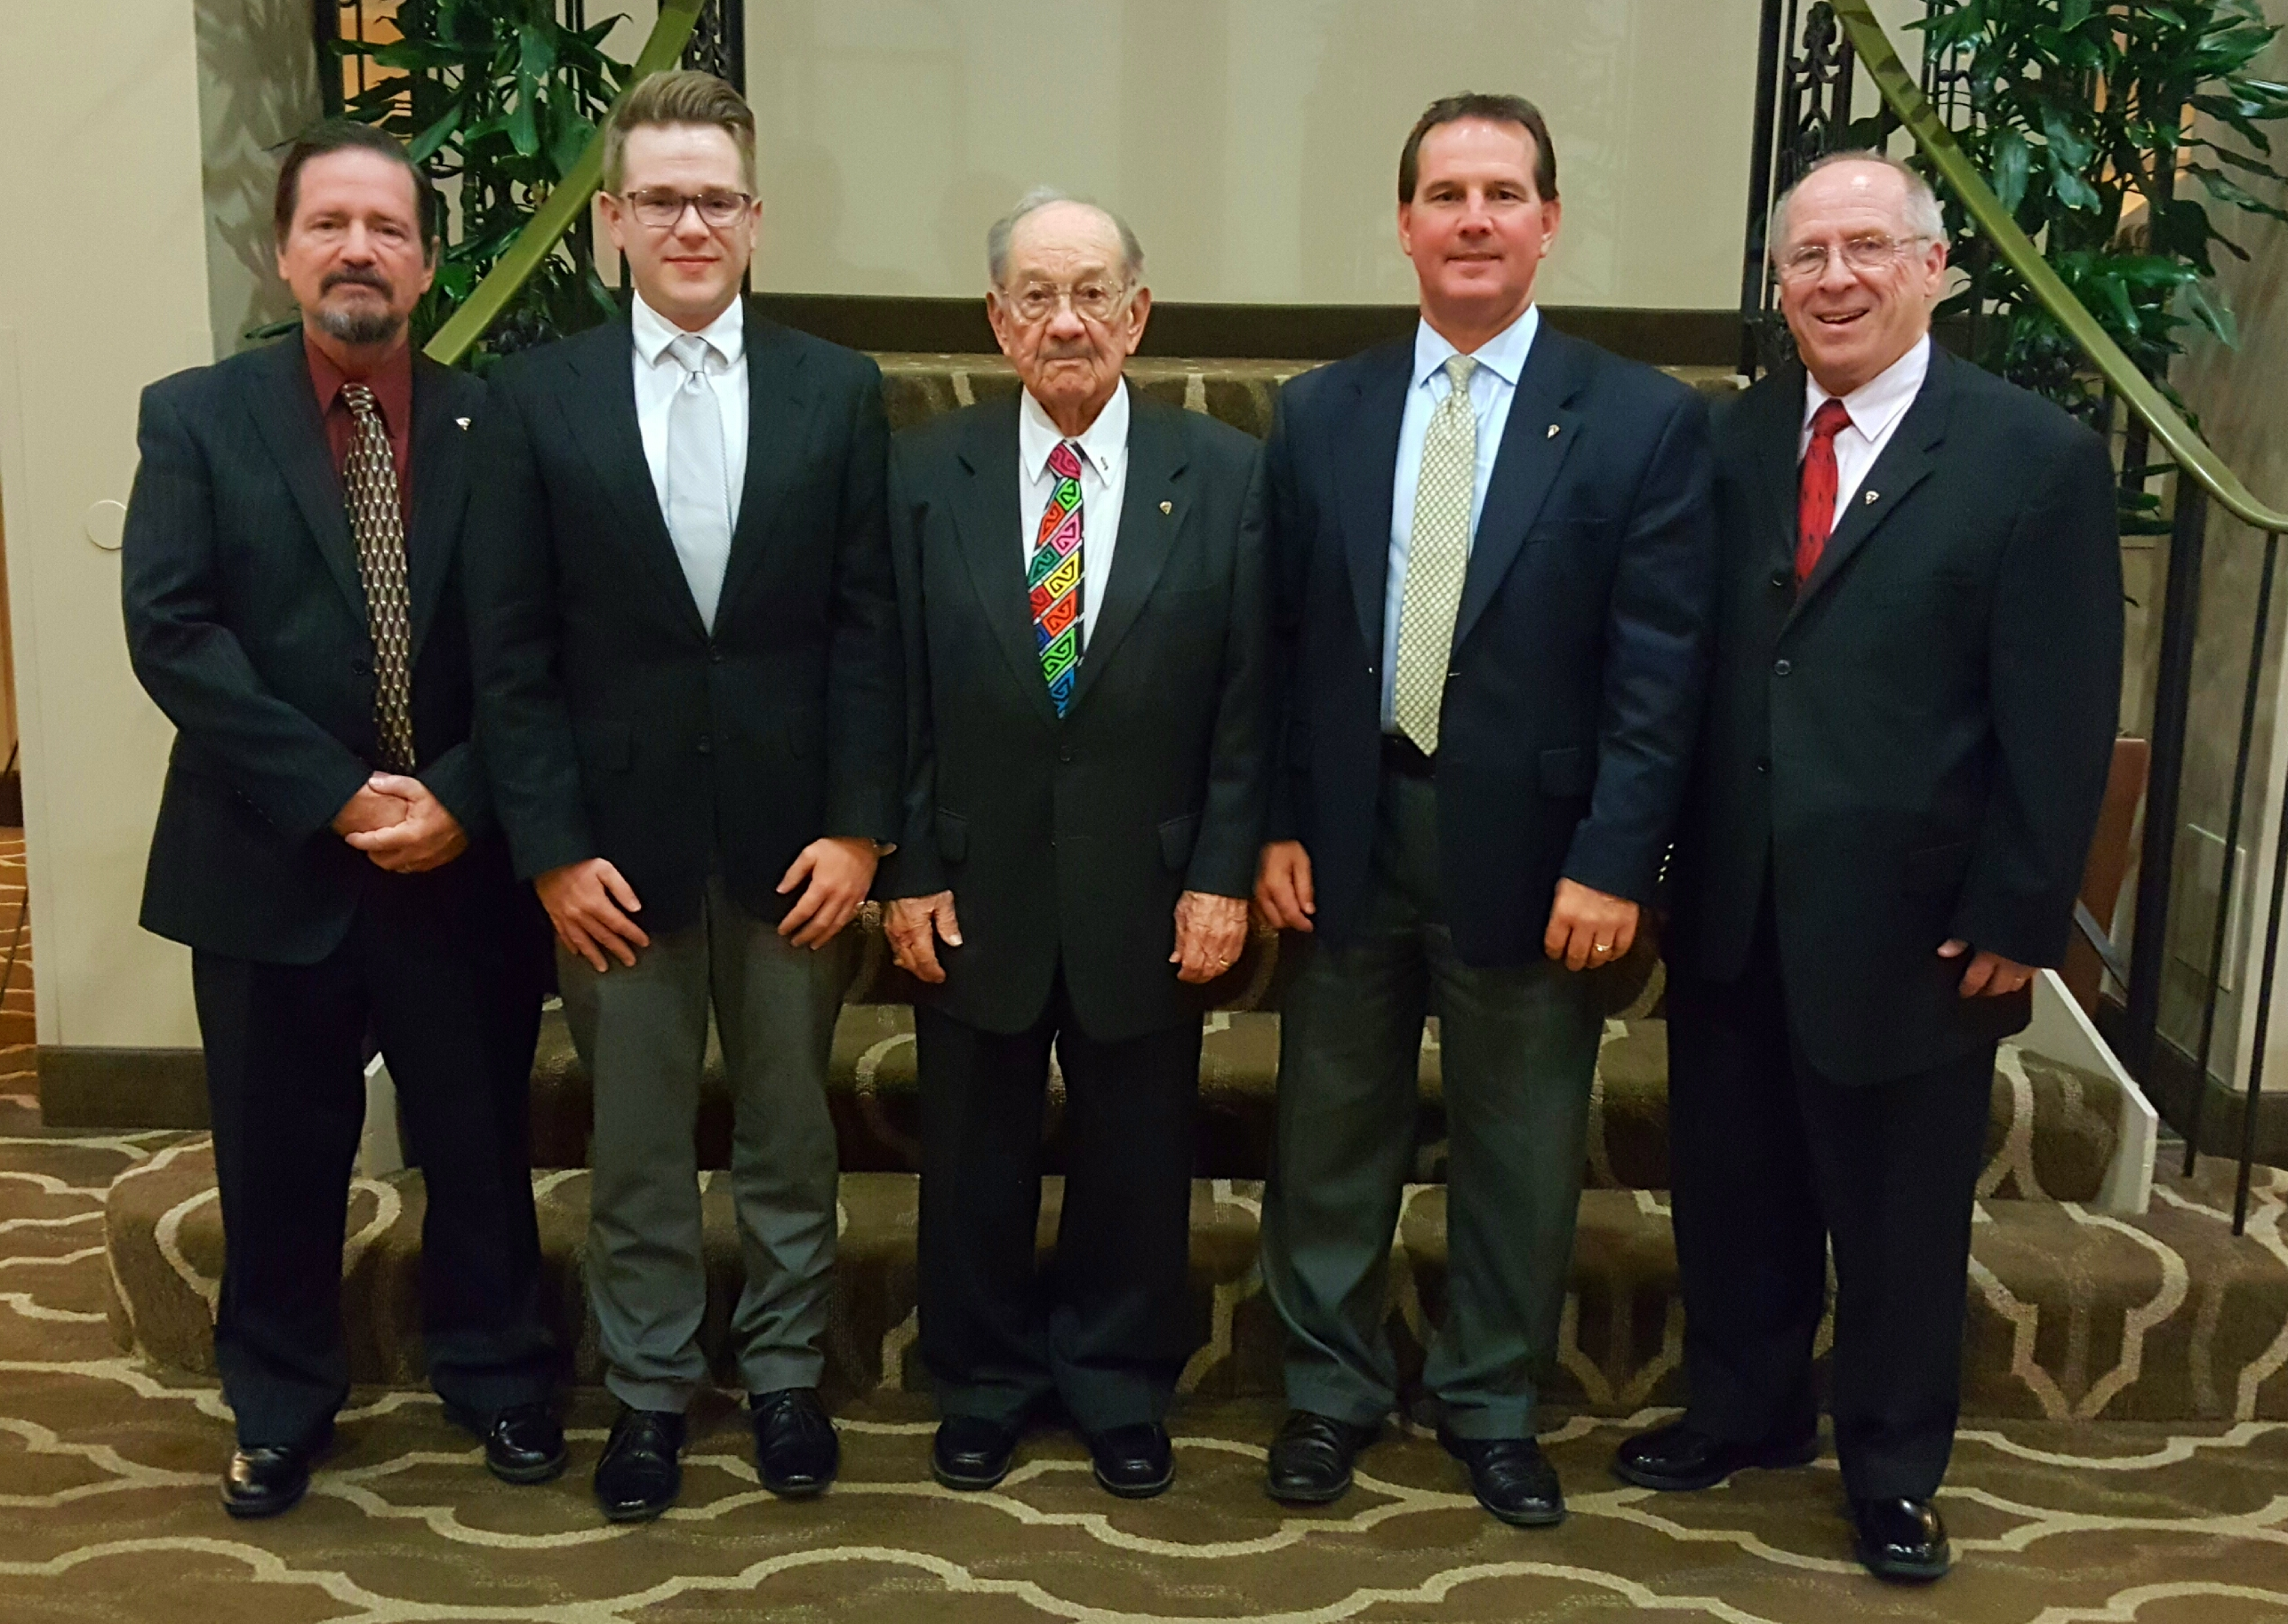 Currently active Brauer Family members include: Vice President William D. Brauer, Operation Manager Benjamin R. Brauer, Chairman William H. Brauer, Vice President Robert G. Brauer and President James L. Truesdell.